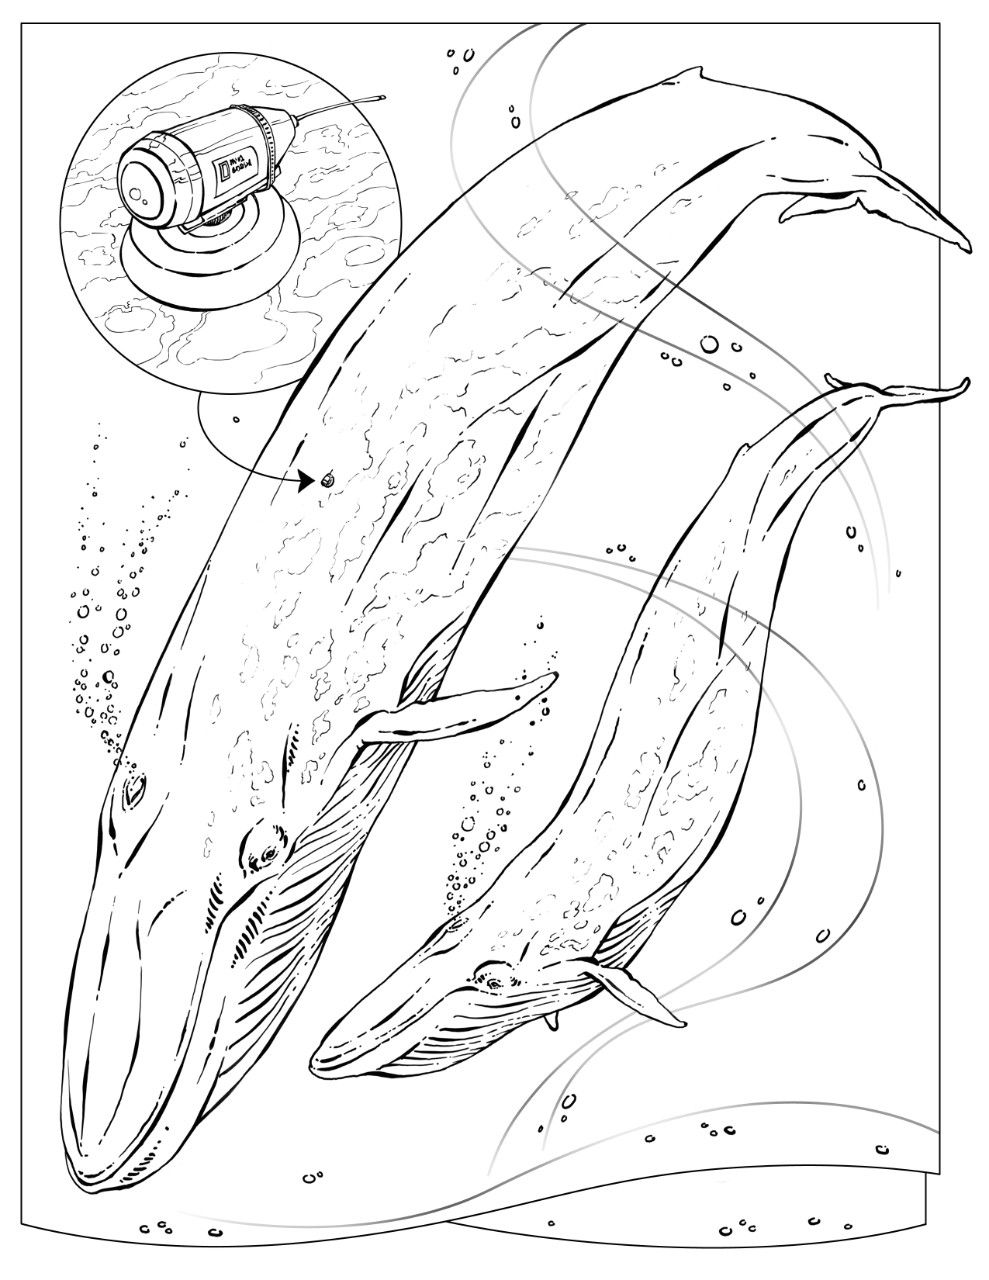 Coloring Book Animals A To I Whale Coloring Pages Coloring Pages Nature Shark Coloring Pages